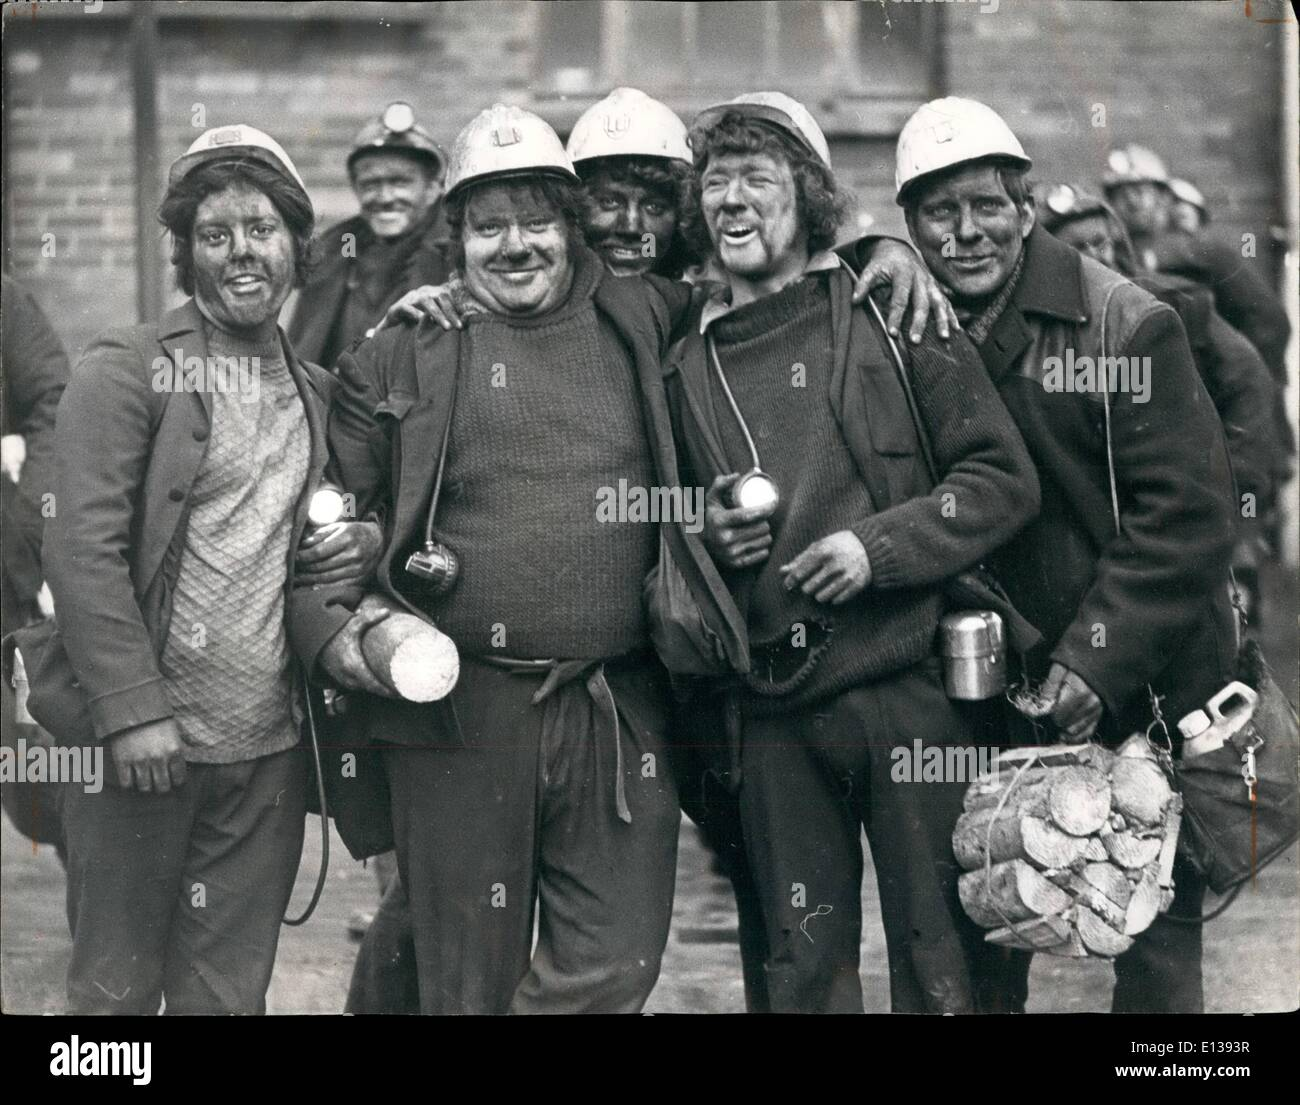 Feb. 29, 2012 - Grime covered miners get together after completing their shift at the Lady Windsor Colliery, Wales. Coprontition Continuts... The crippling threat to Britain's power supplies posed by the industrial dispute between the coal miners and the Government continues, with most of the country working a three-day week. The overtime ban imposed by miners' unions is having a disastrous effect and has pushed he unemployment figures sky high. This picture were taken at the Ynysybwl Lady Windsor colliery in South Wales, recently. - Stock Image